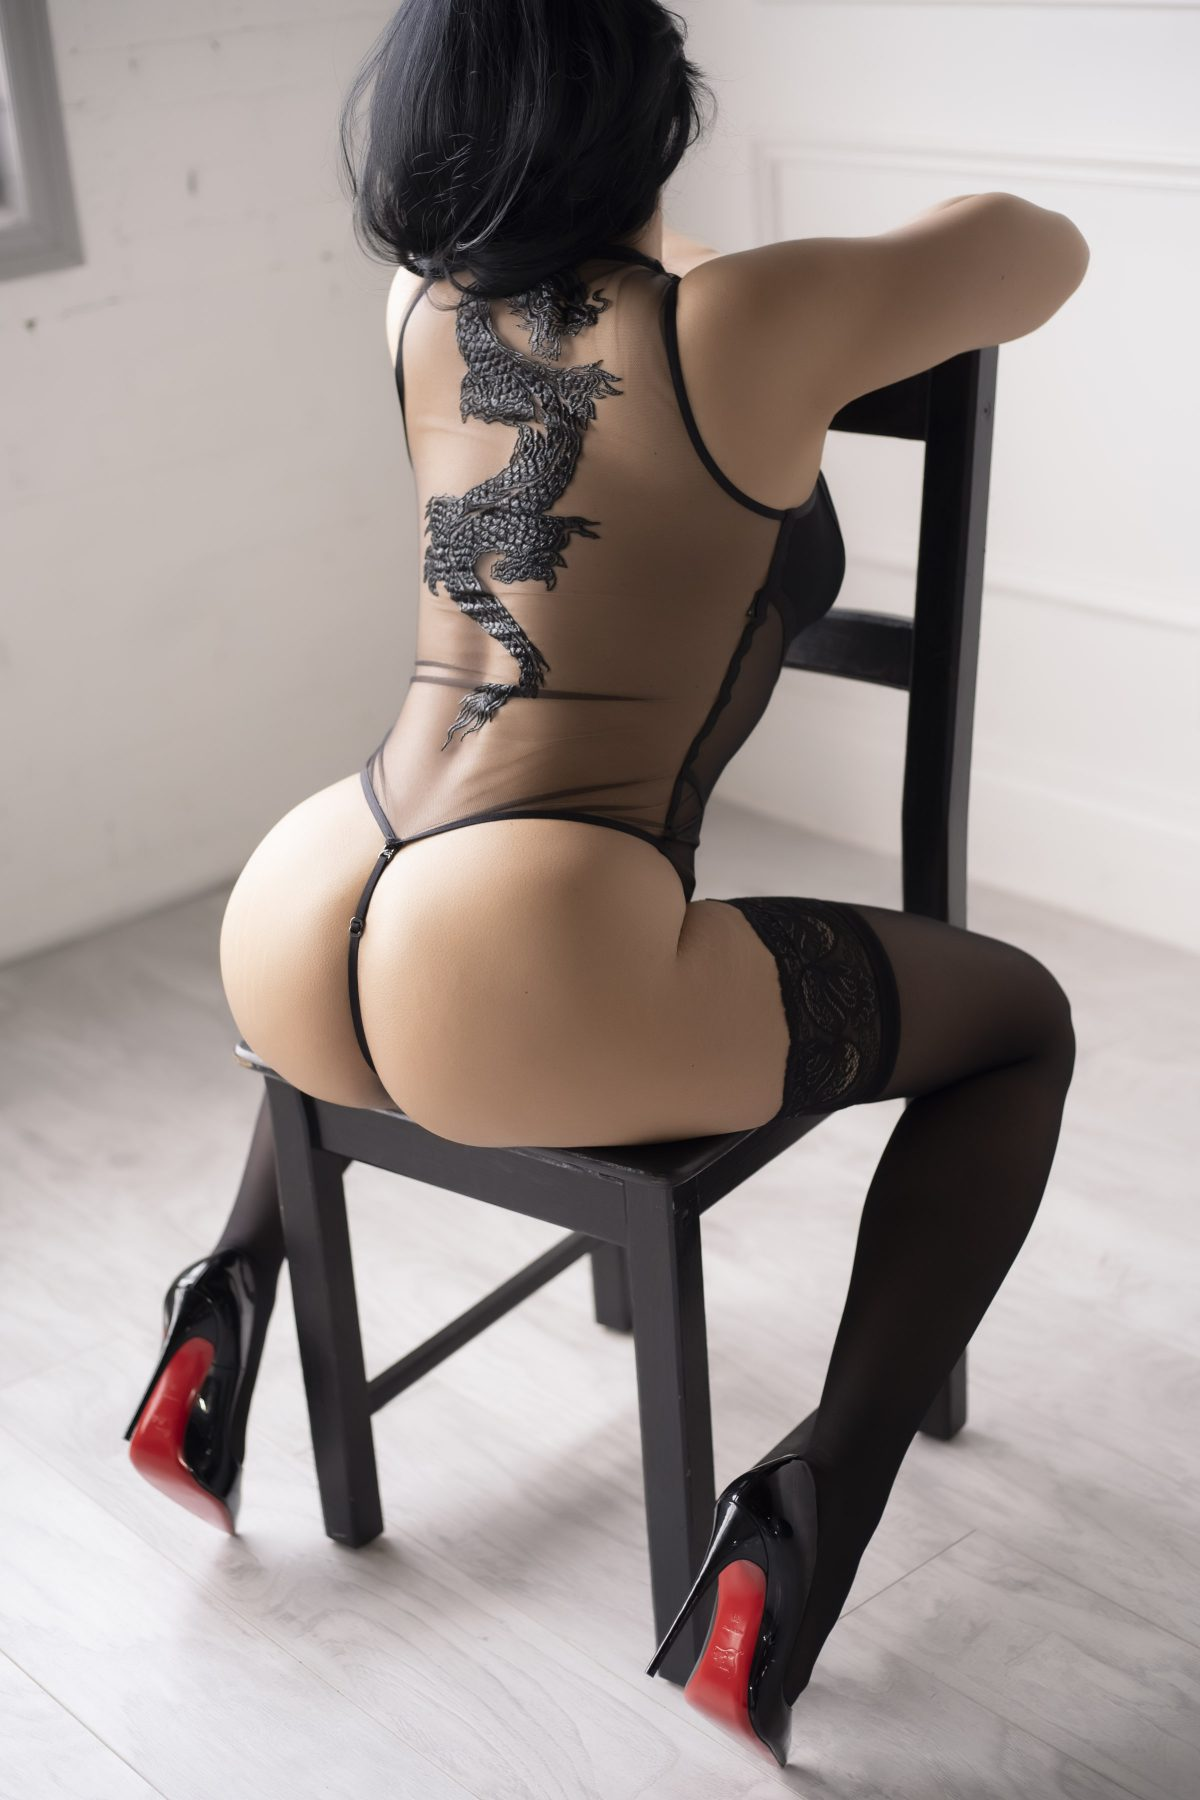 Toronto escorts companion upscale Celine Interests Disability-friendly Non-smoking Age Mature Figure Slender Curvy Petite Breasts Natural Hair Raven-Haired Ethnicity European Tattoos None Arrival